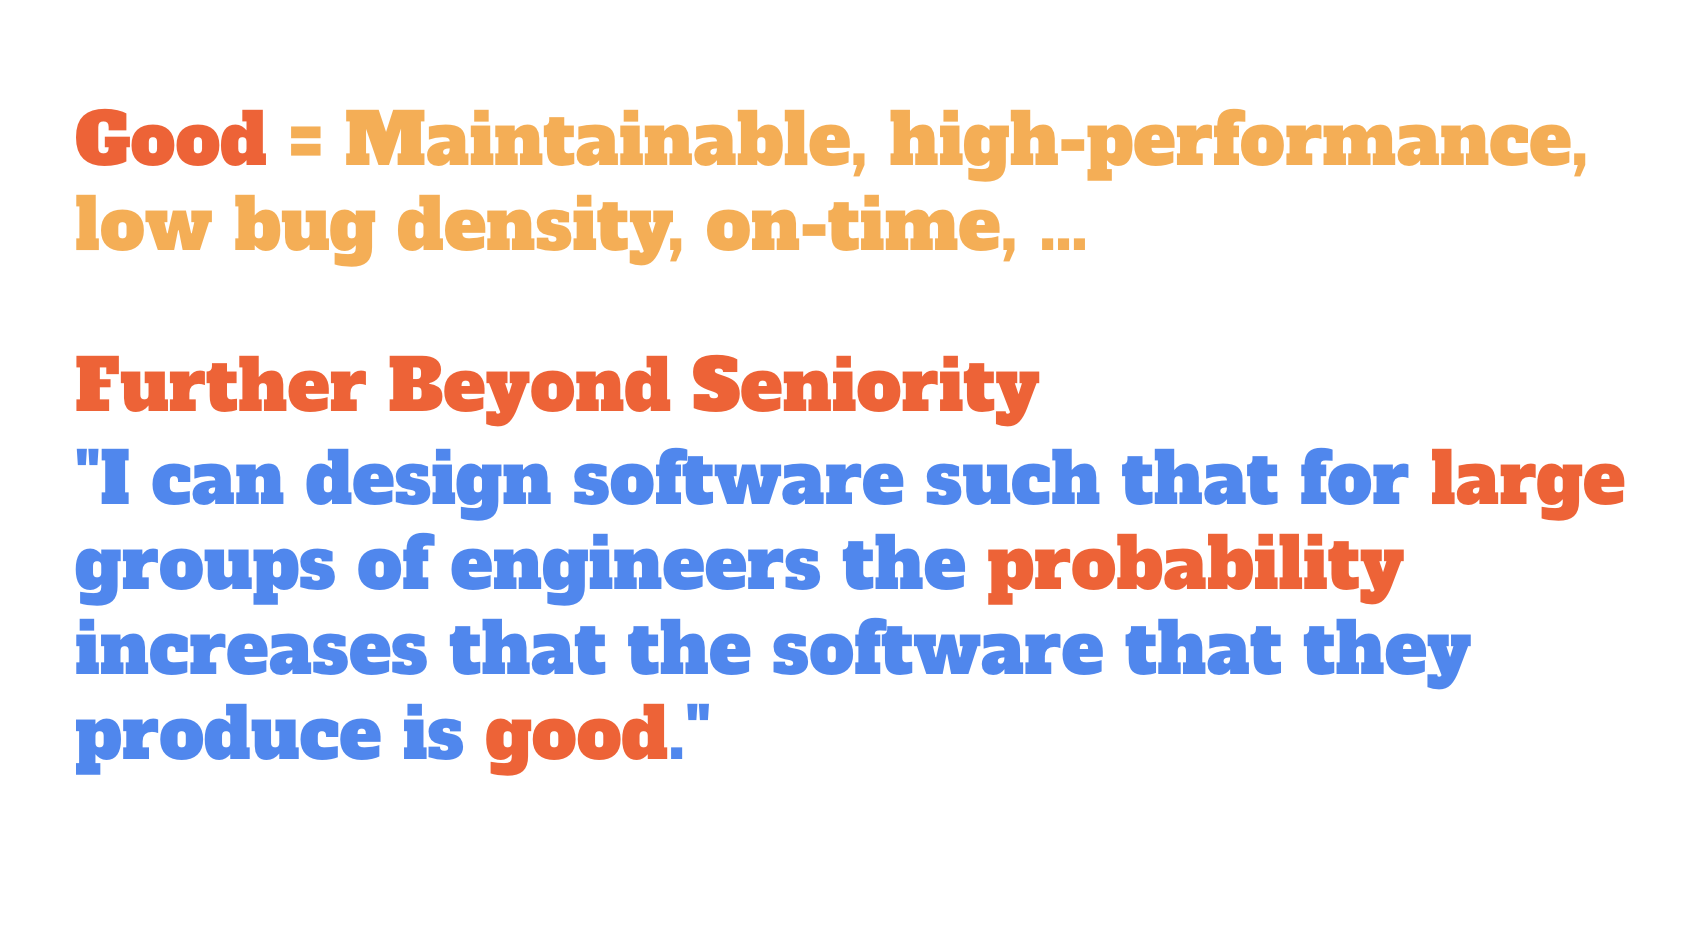 "Good = Maintainable, high-performance, low bug density, on-time, …. Further Beyond Seniority: ""I can design software such that for large groups of engineers the probability increases that the software that they produce is good."""